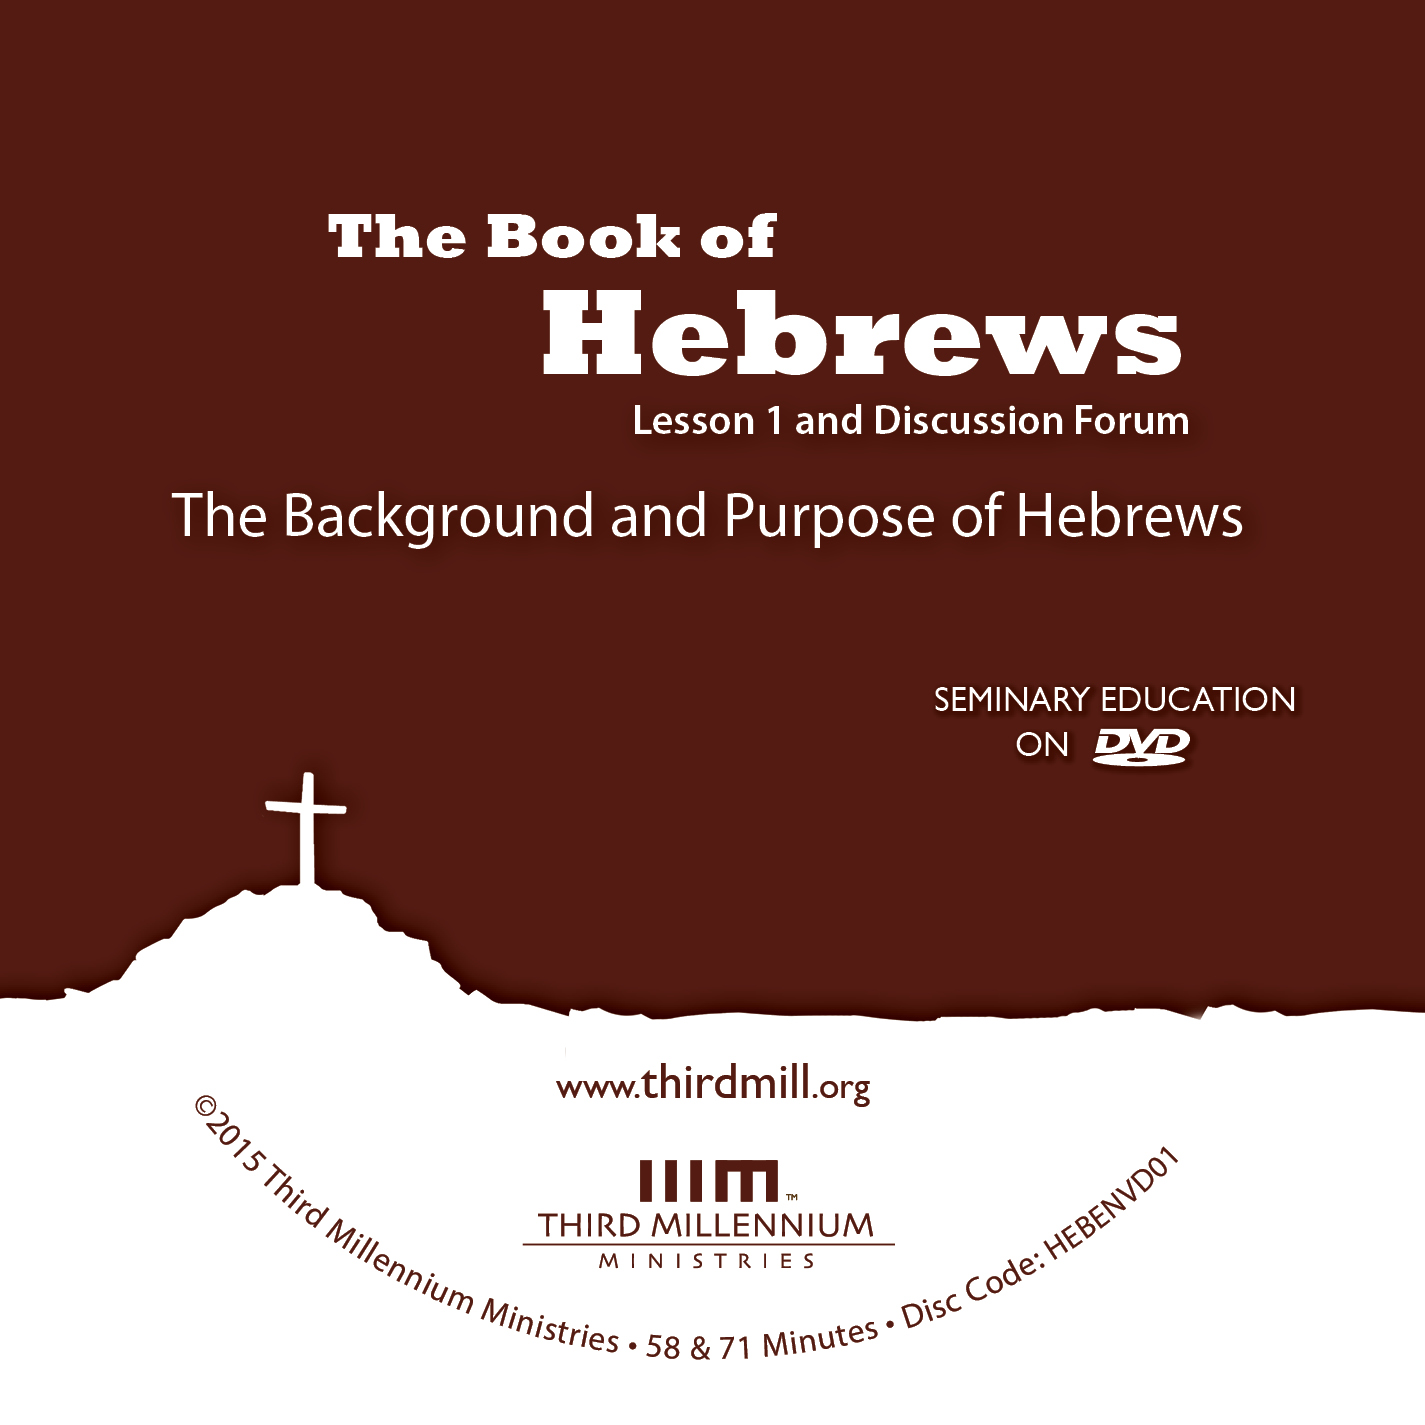 The Book of Hebrews: The Background and Purpose of Hebrews (high